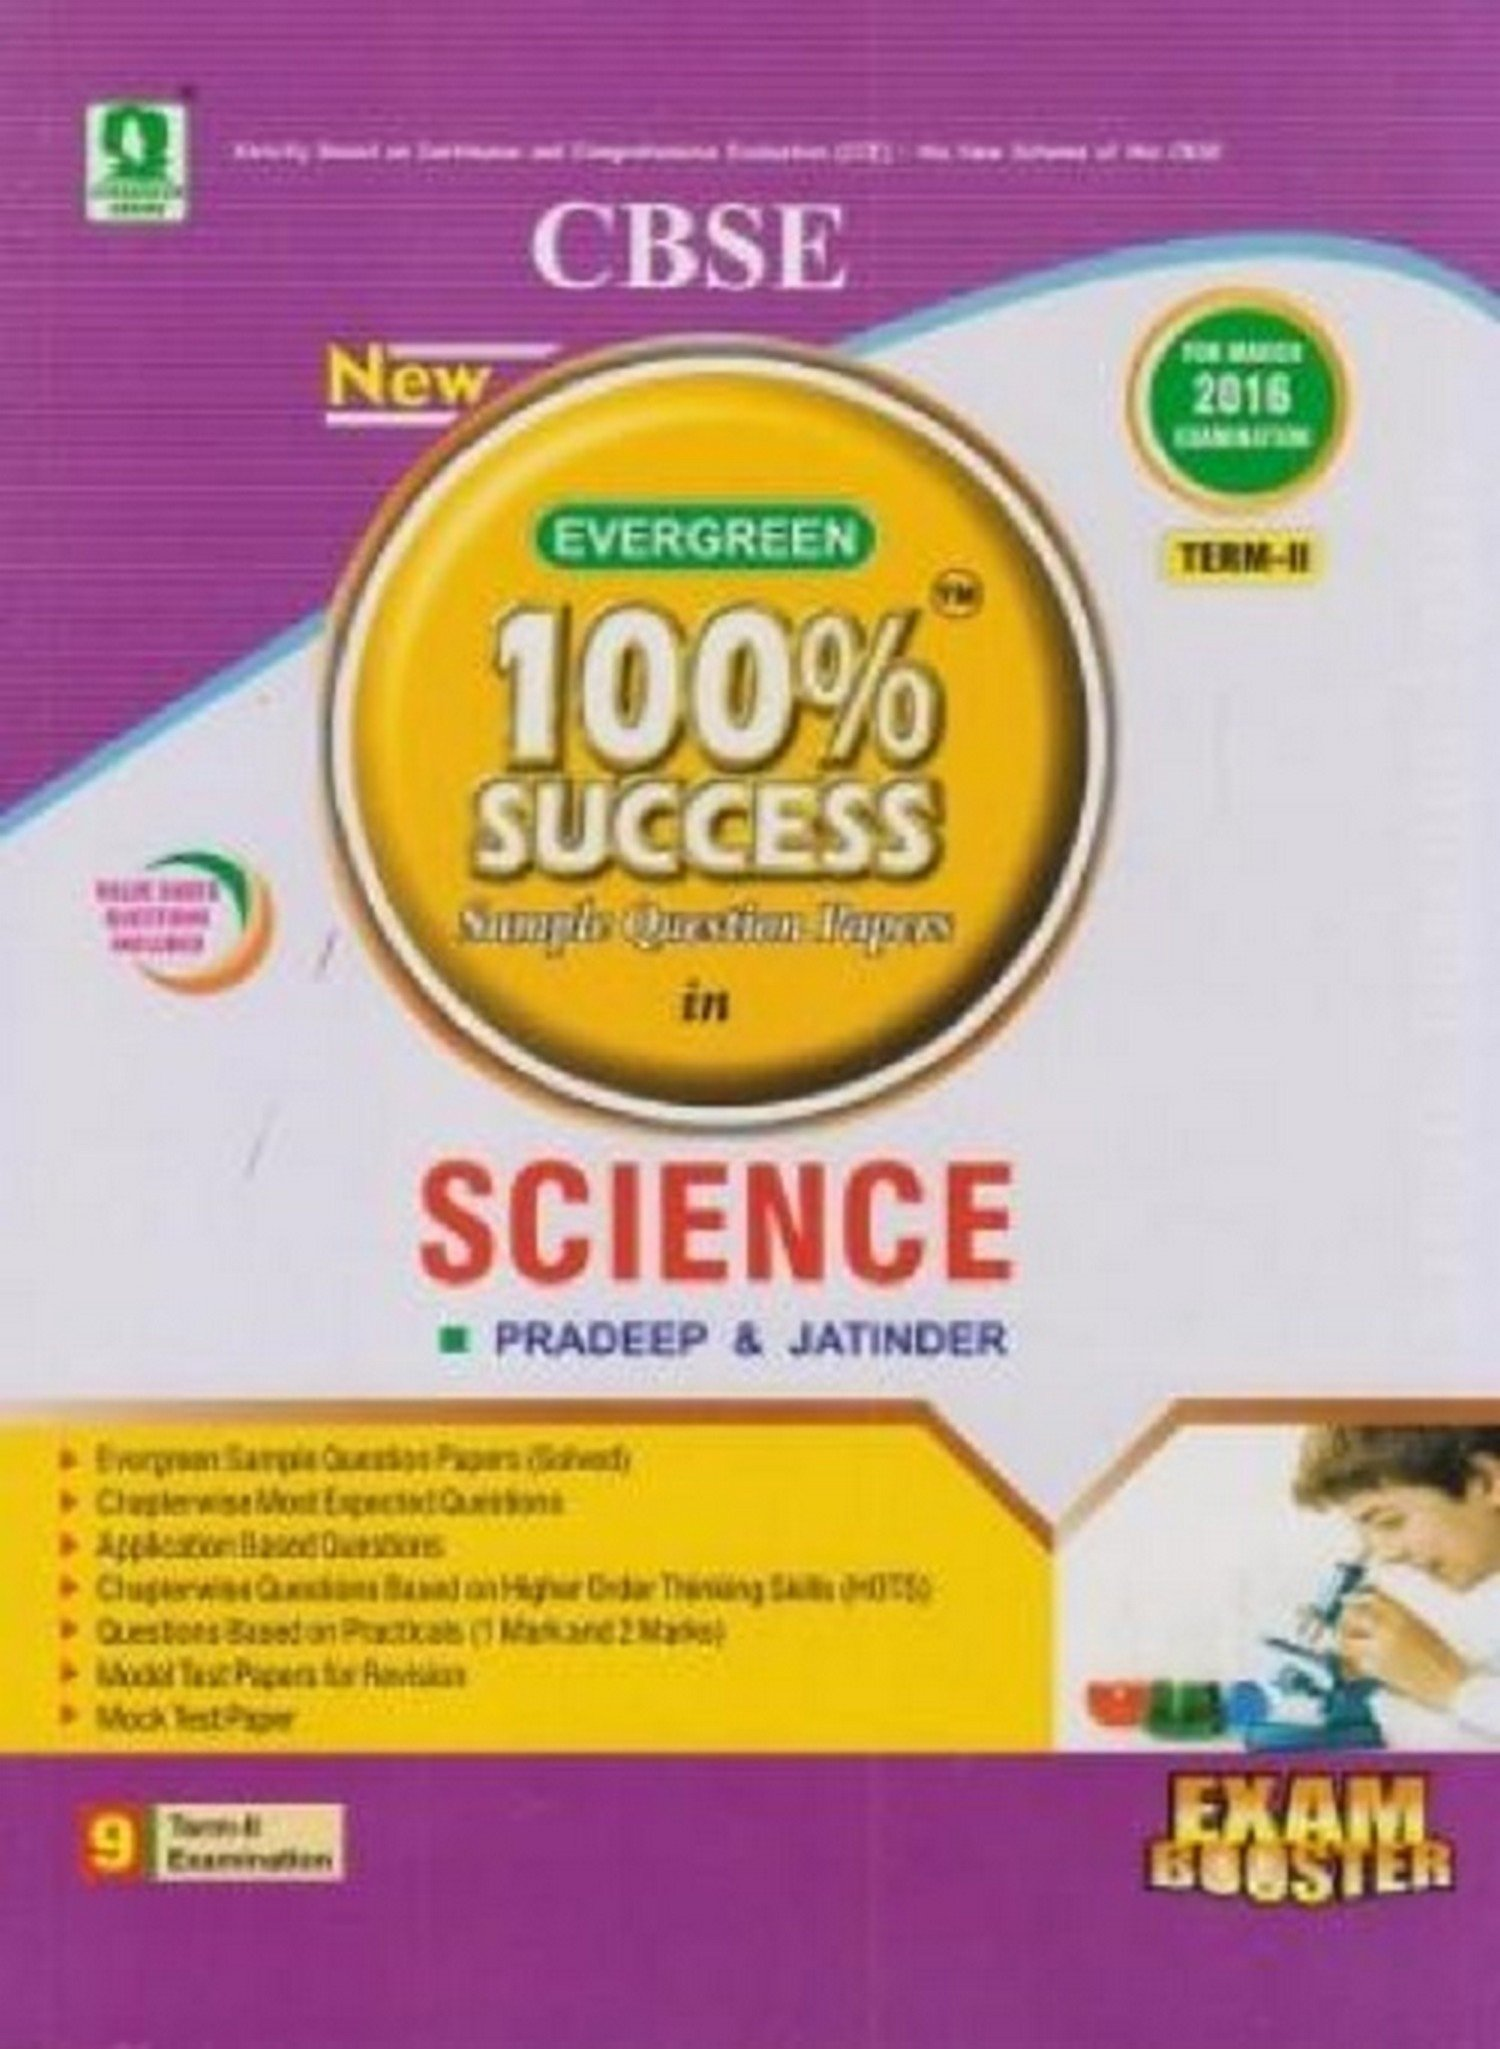 buy cbse evergreen 100 success sample papers in science term 2 rh amazon in Math Class Room Math Class Room